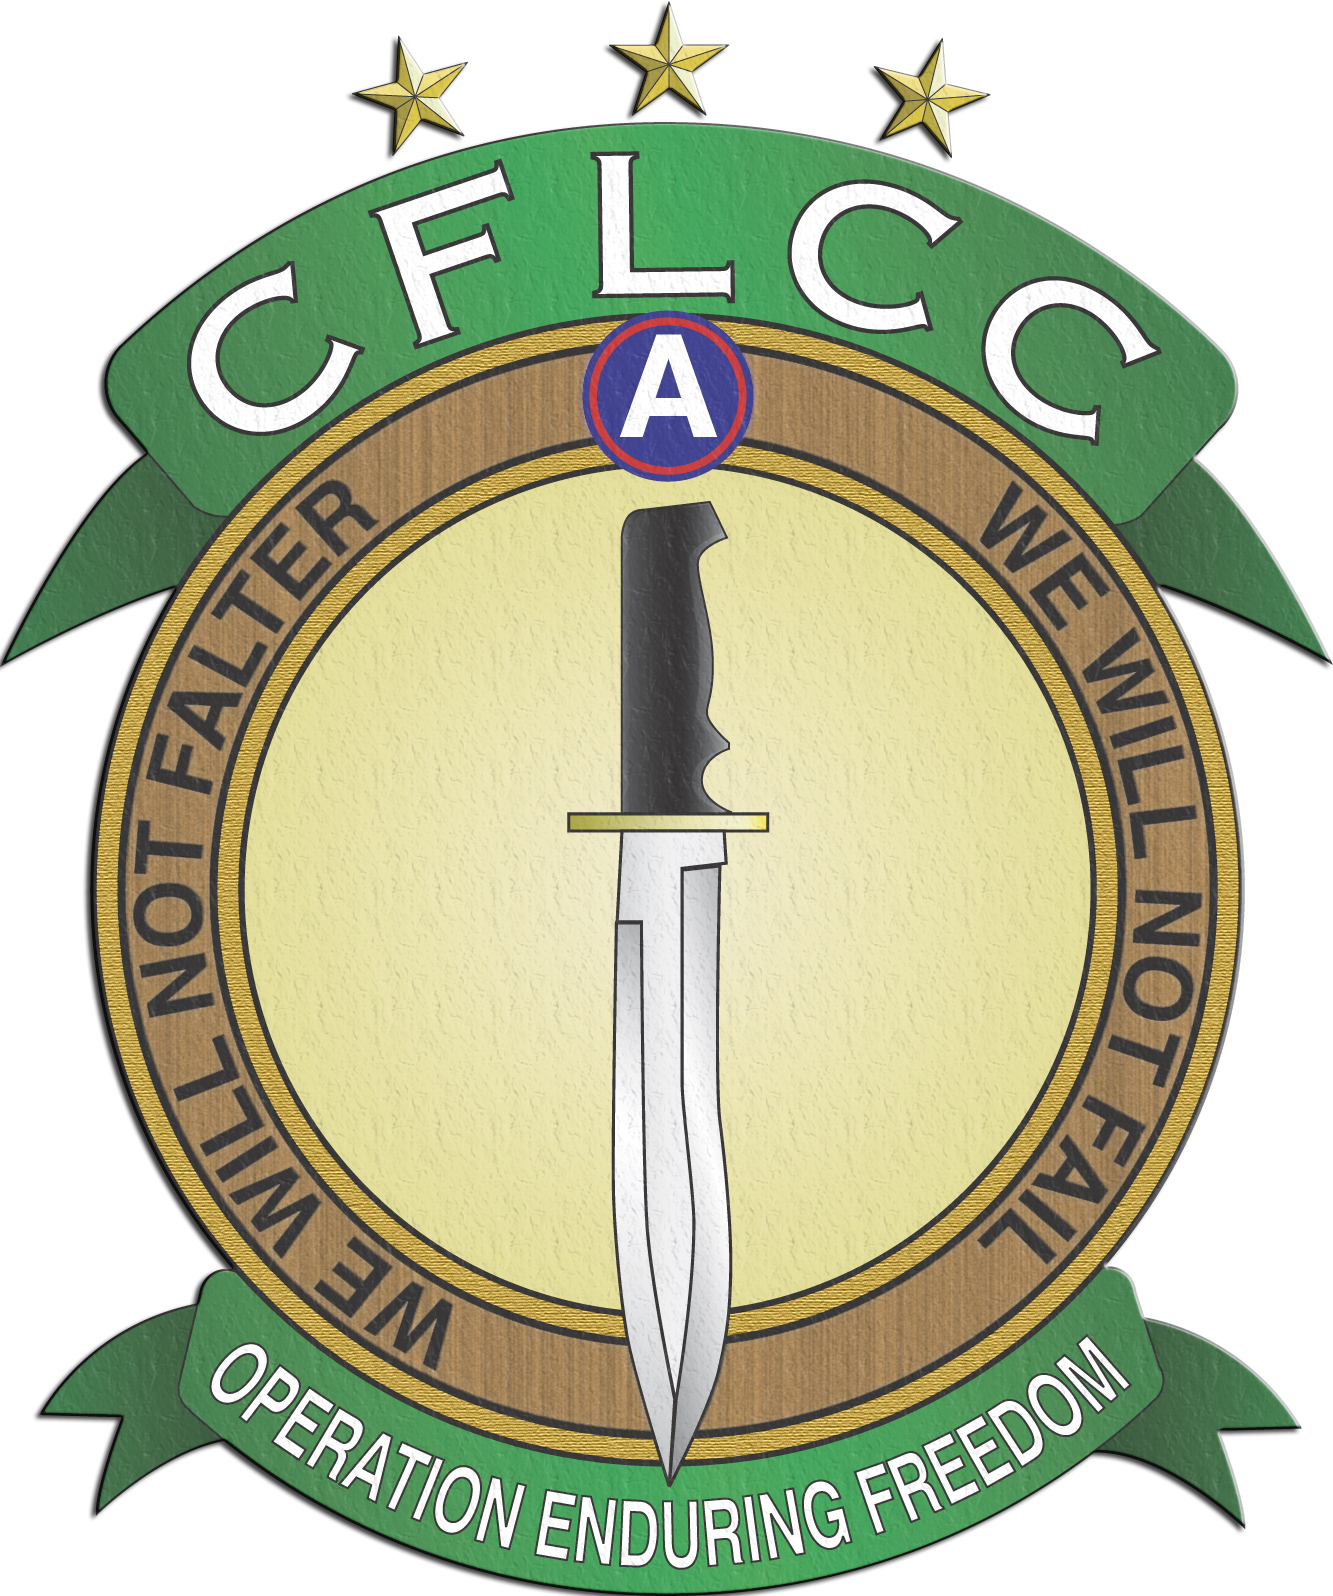 Cflcc Logo Decal